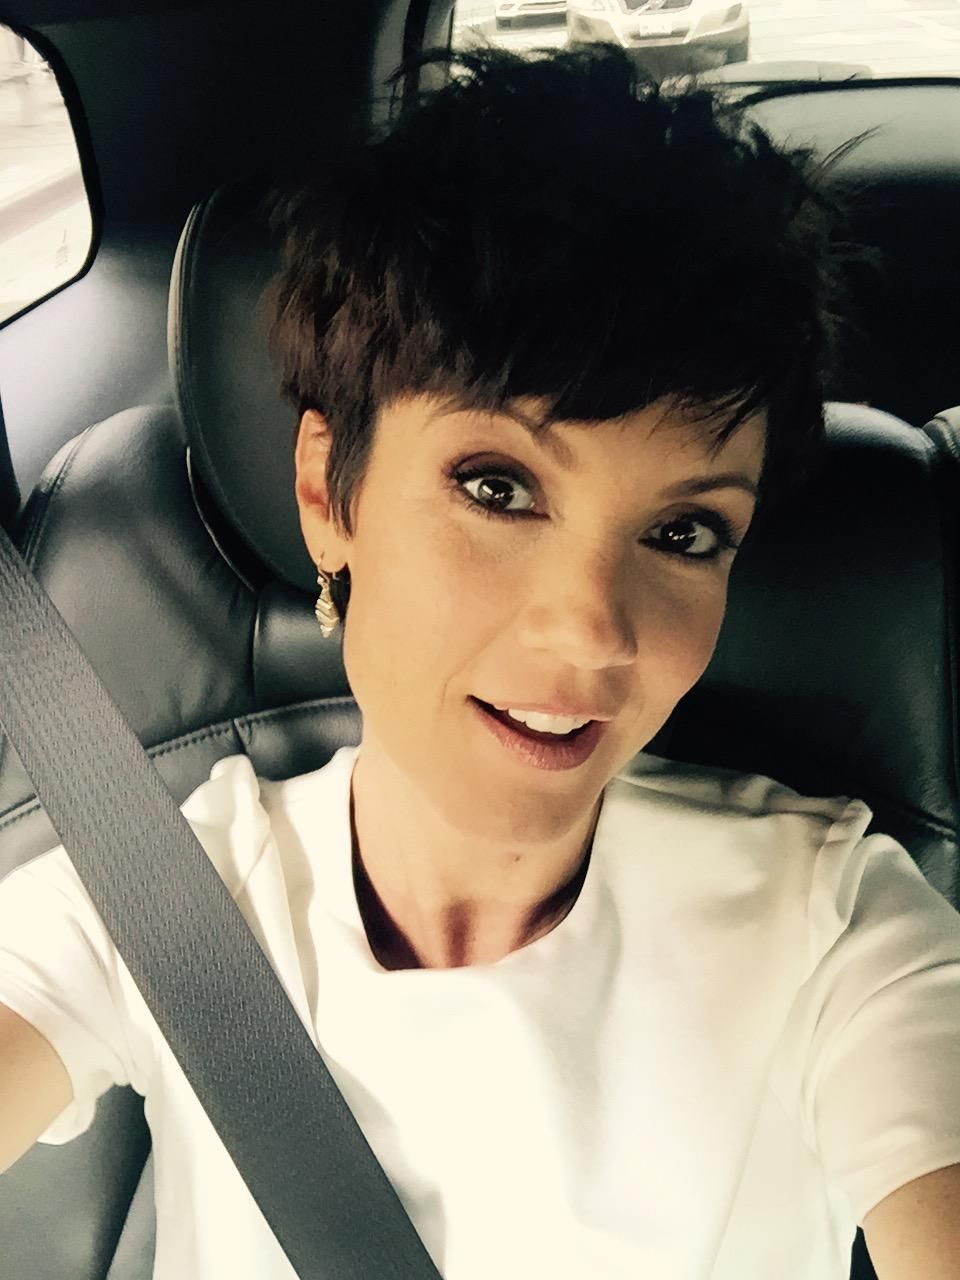 Stupendous 1000 Images About Zoe Mclellan On Pinterest Short Hairstyles Gunalazisus